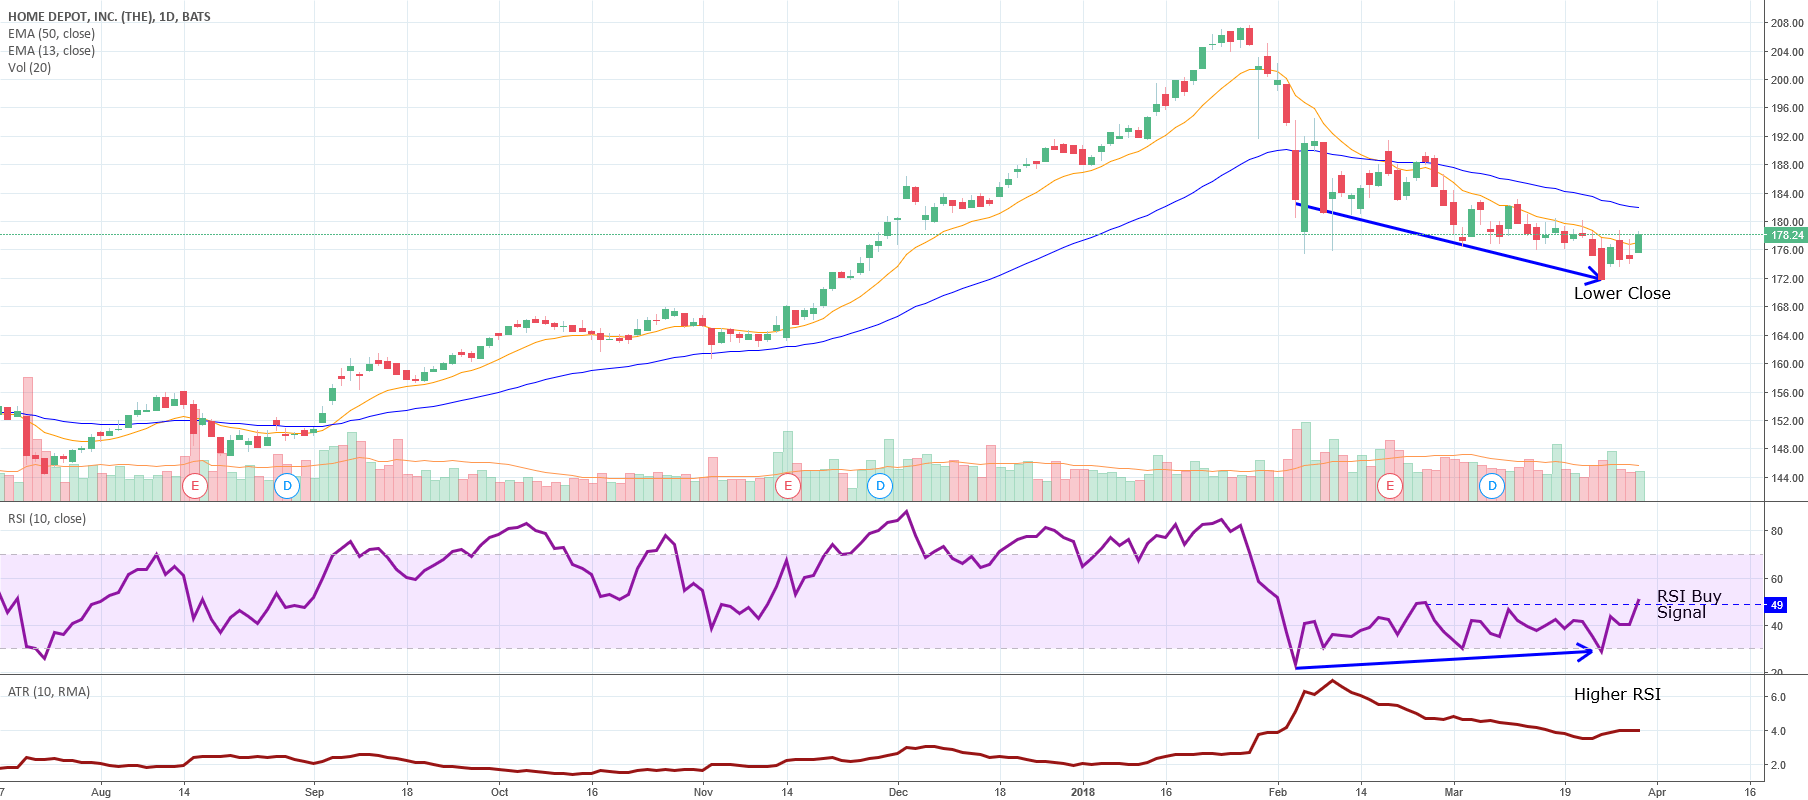 HD Buy Signal for NYSE:HD by Scribnersplace — TradingView